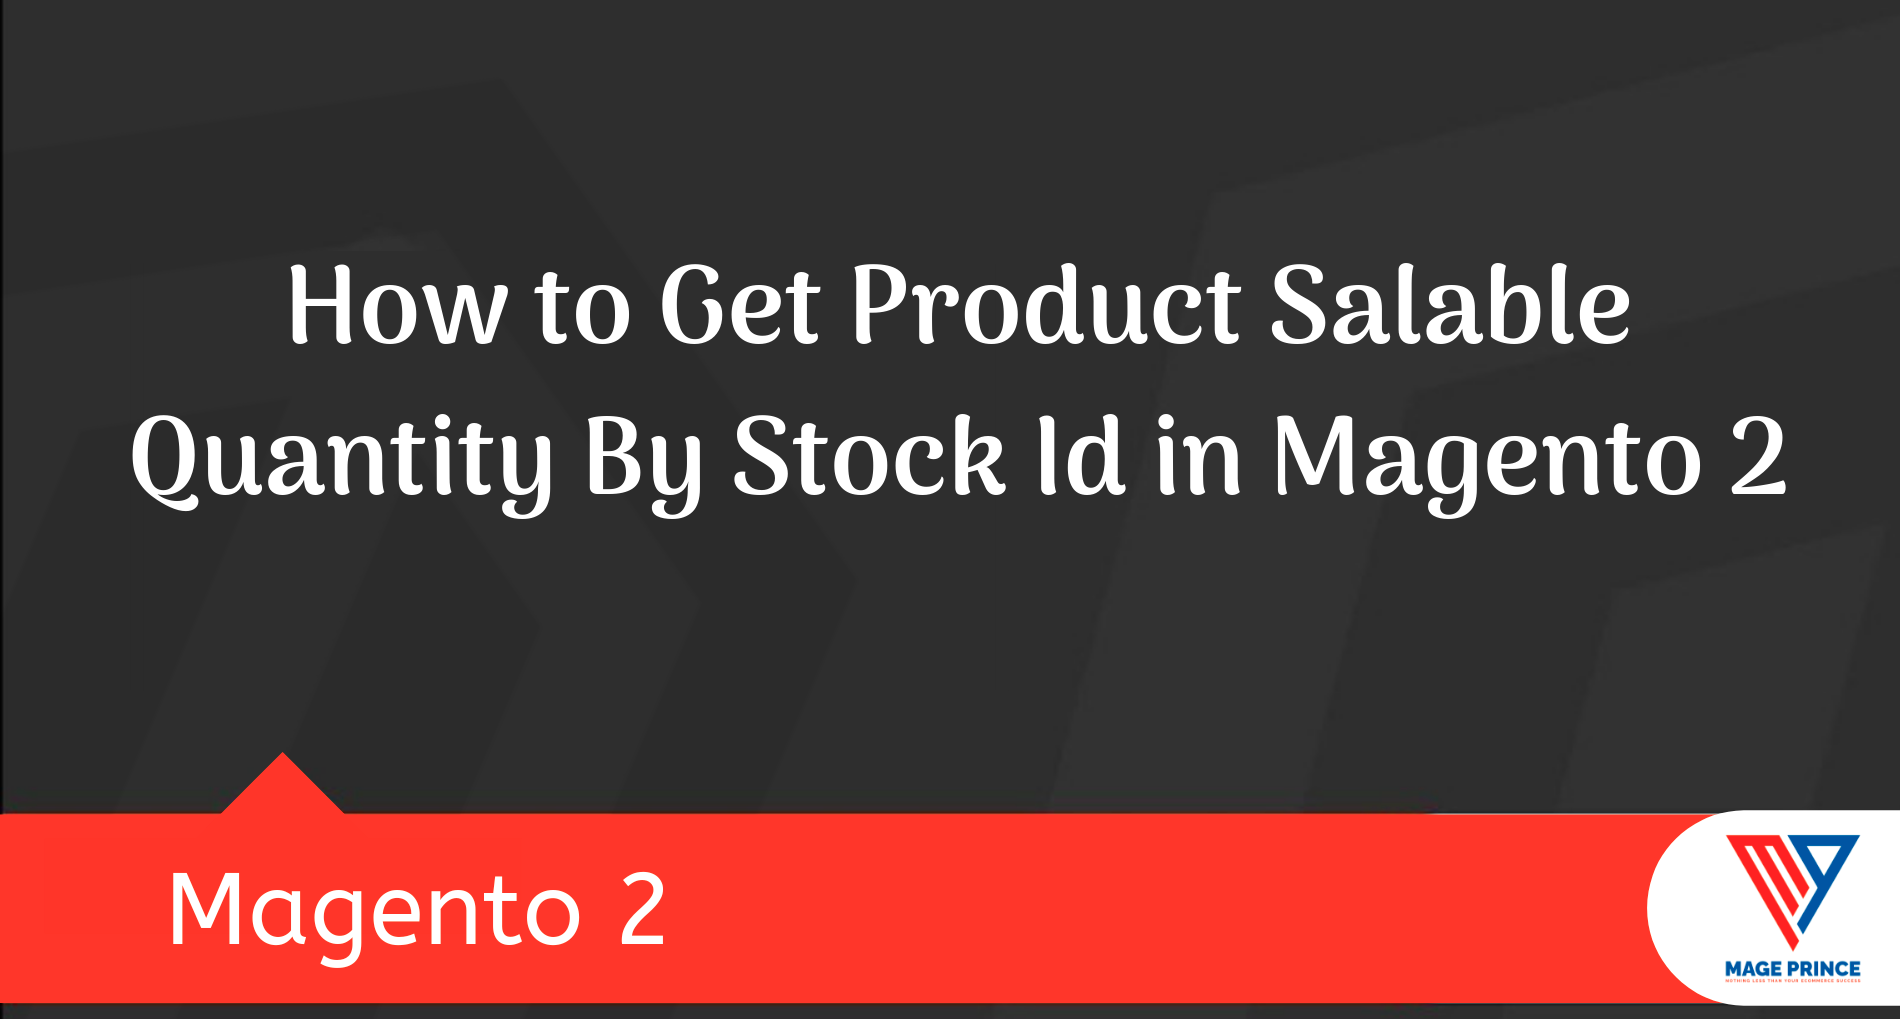 How to Get Product Salable Quantity By Stock Id  in Magento 2